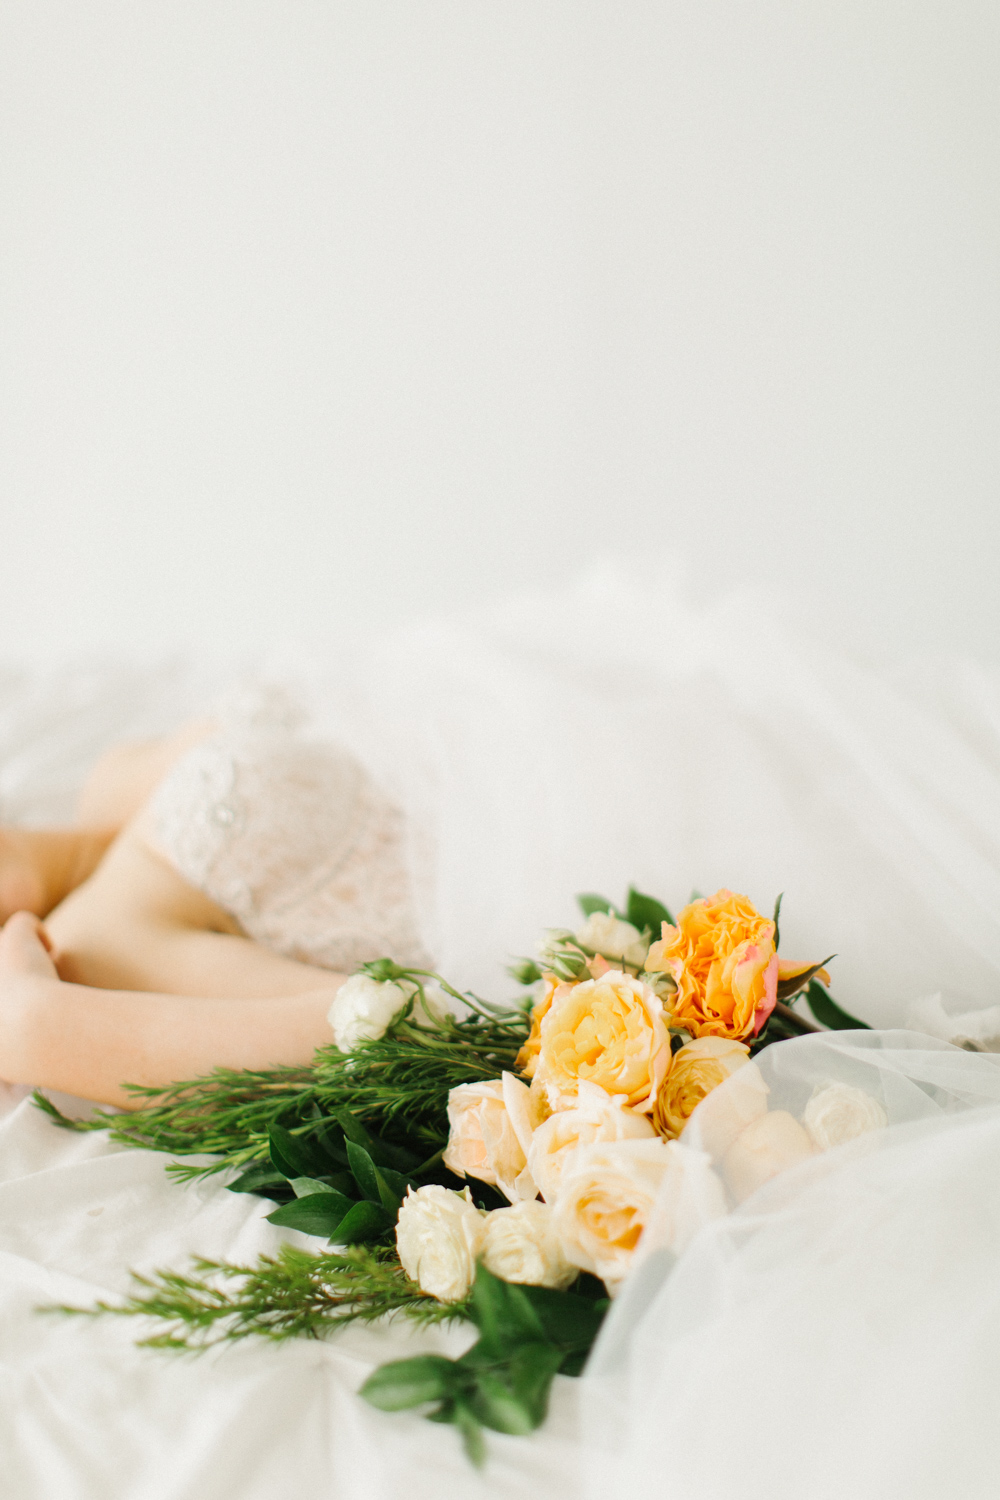 Seattle Fine Art Wedding Photographer | Seattle Downtown White Studio Bridal Session | Stunning Wedding Bouquet | Seattle Bride | Seattle Wedding | Photography Studio Space | Emma Rose Company Wedding Photography-36.jpg